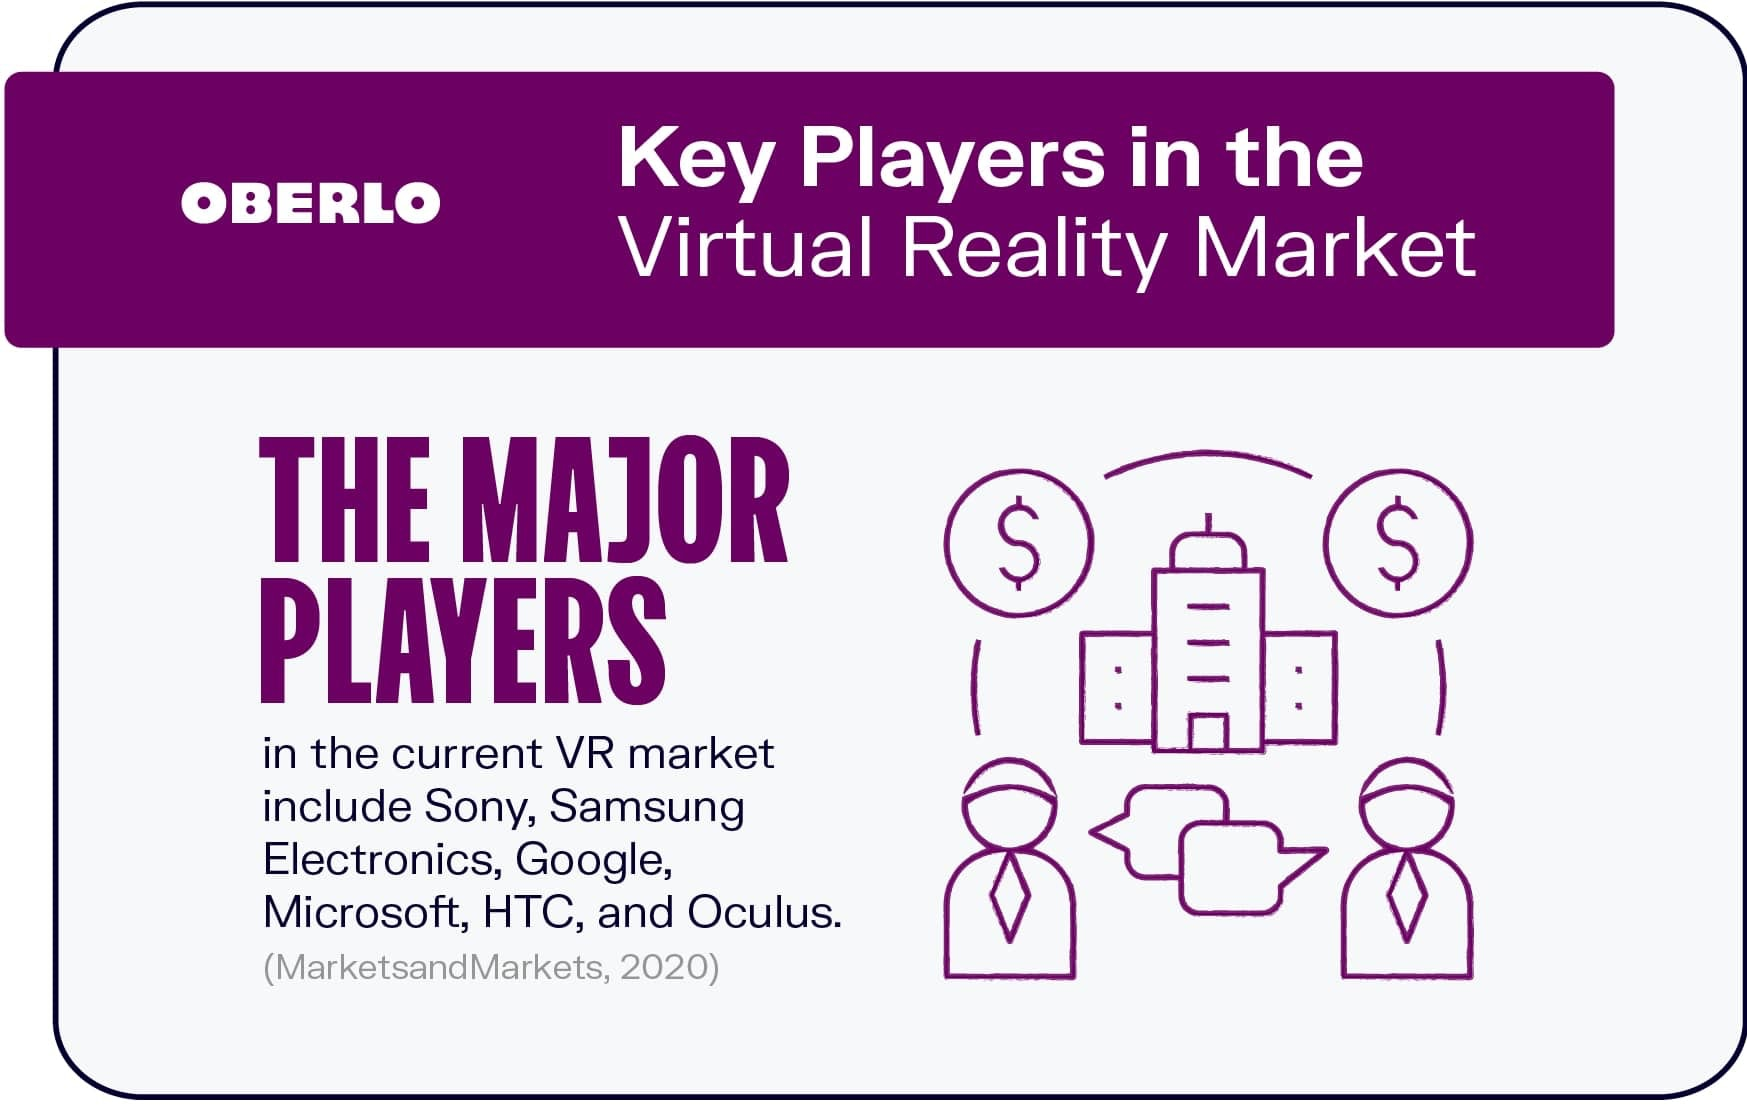 Key Players in the Virtual Reality Market